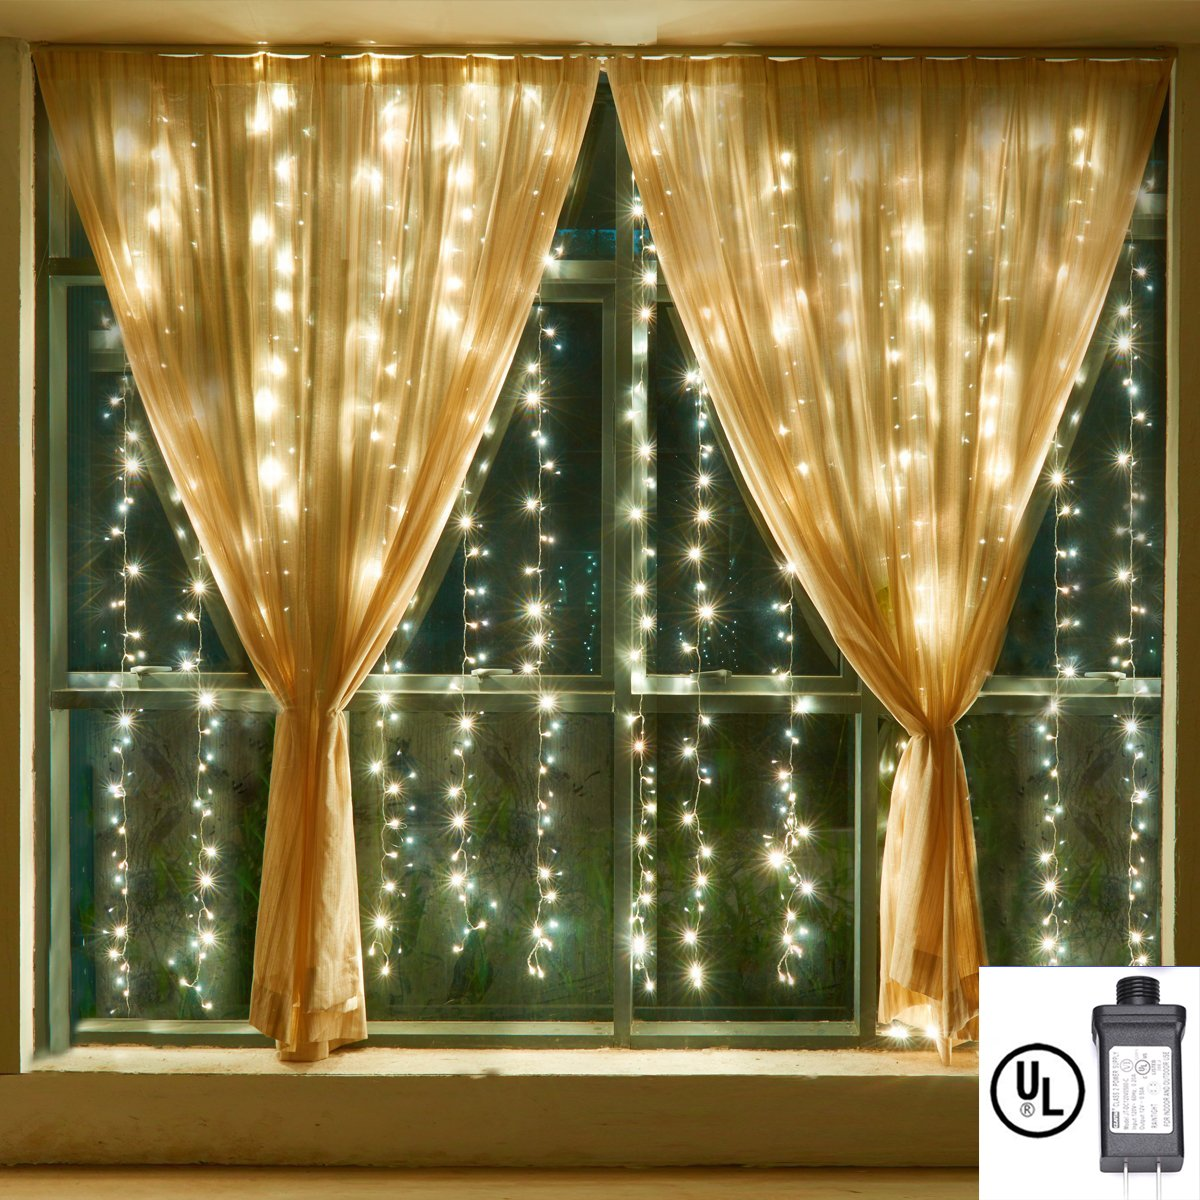 Curtain Lights,Bienna 3M x 3M /10 ft x 10 ft 304 LED UL Listed Plug In Icicle Twinkle Fairy String Lighting [Waterproof] [8 Modes] for Christmas Window Weddings Bedroom Indoor Outdoor Party-Warm White